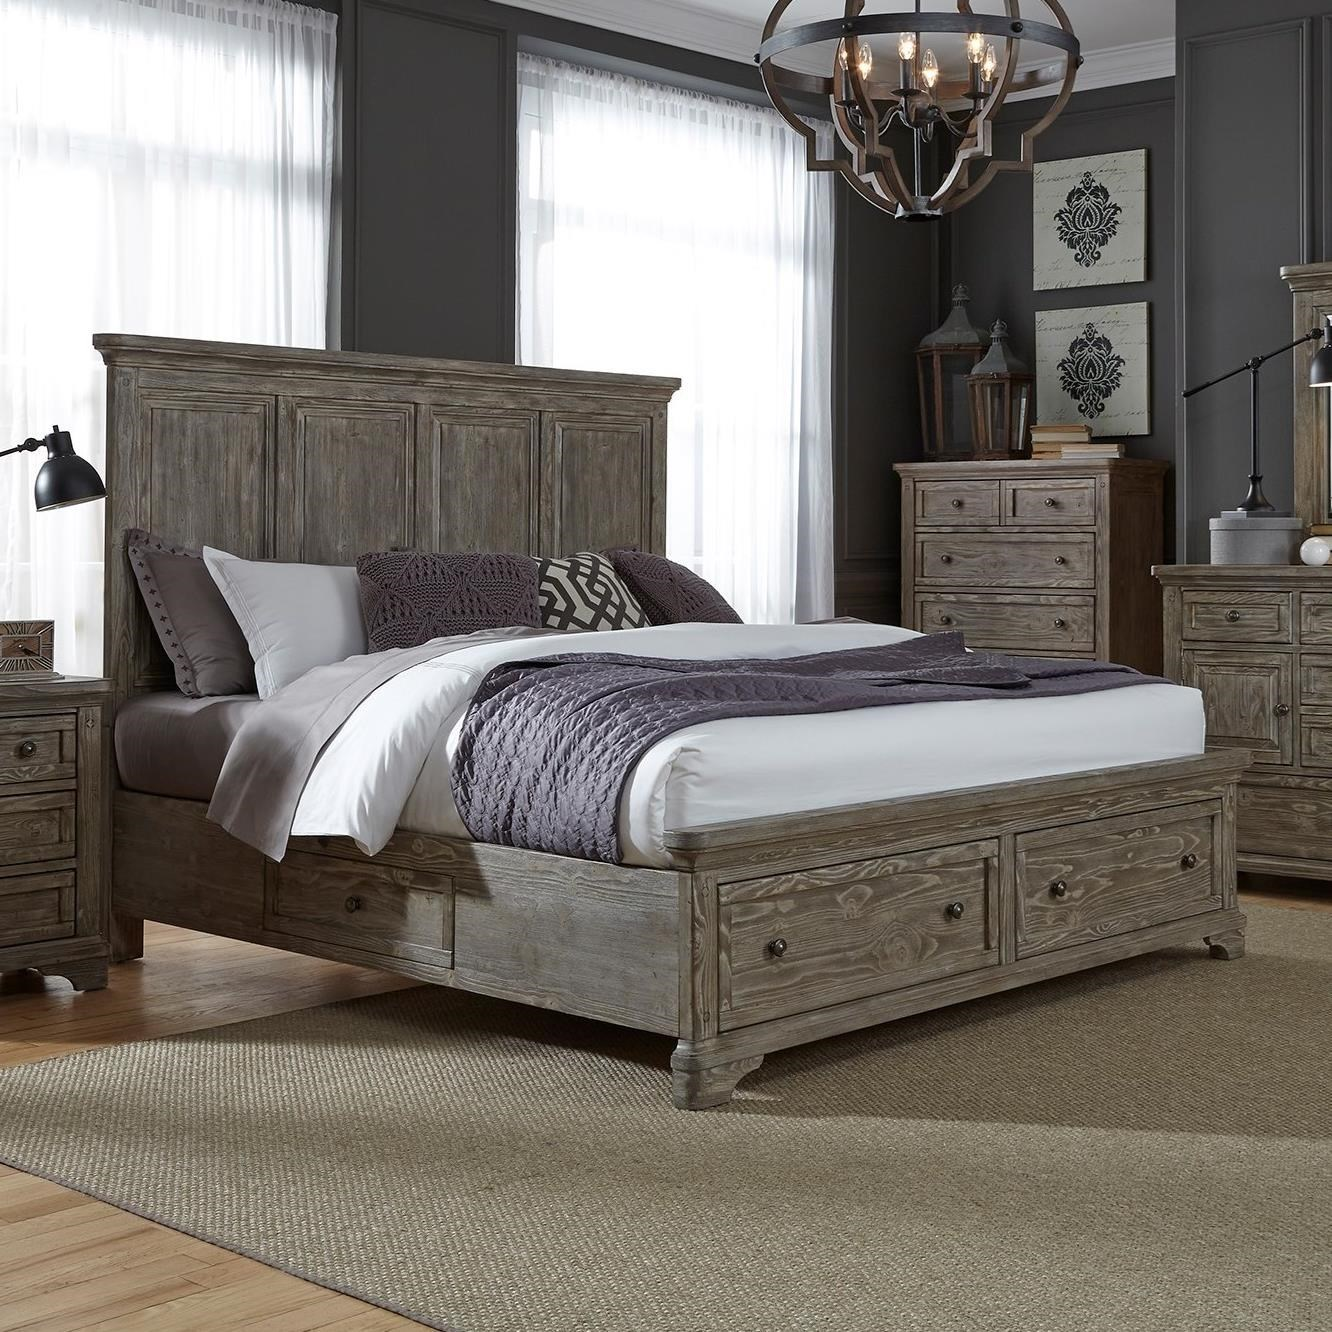 Superieur Liberty Furniture Highlands Queen Two Sided Storage Bed